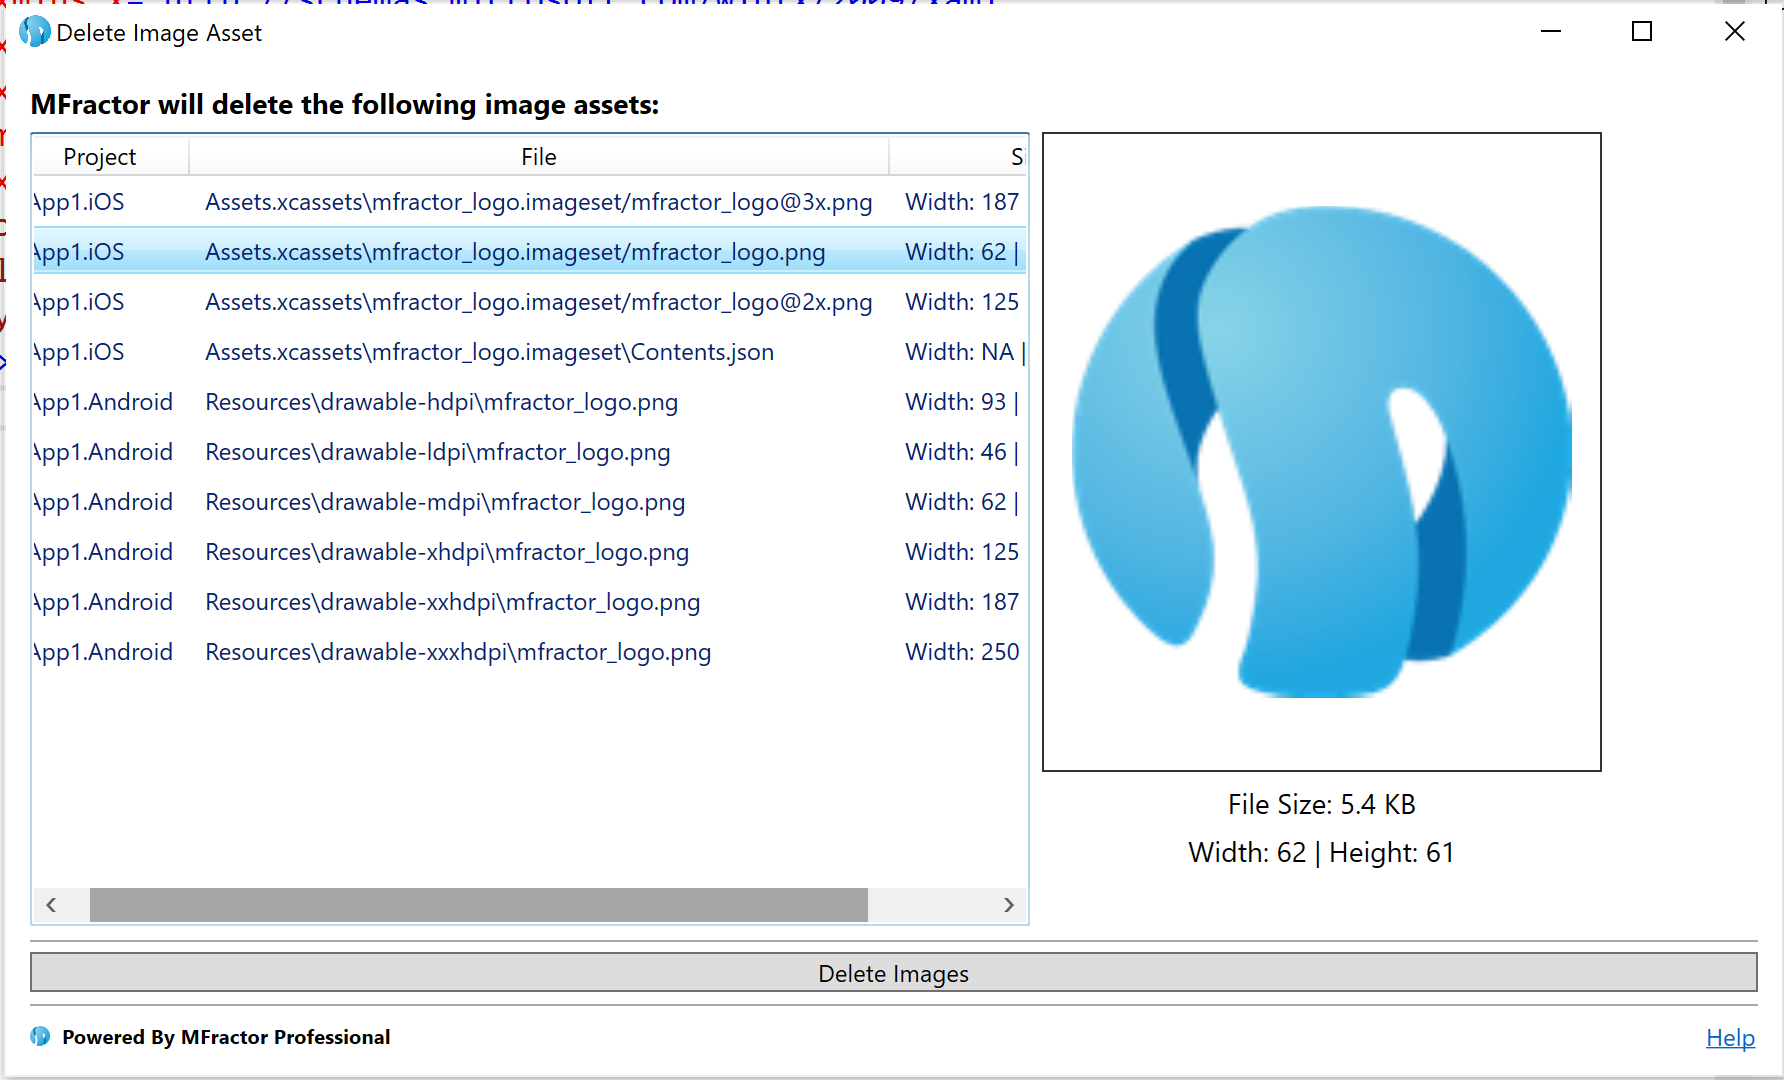 The image deletion tool